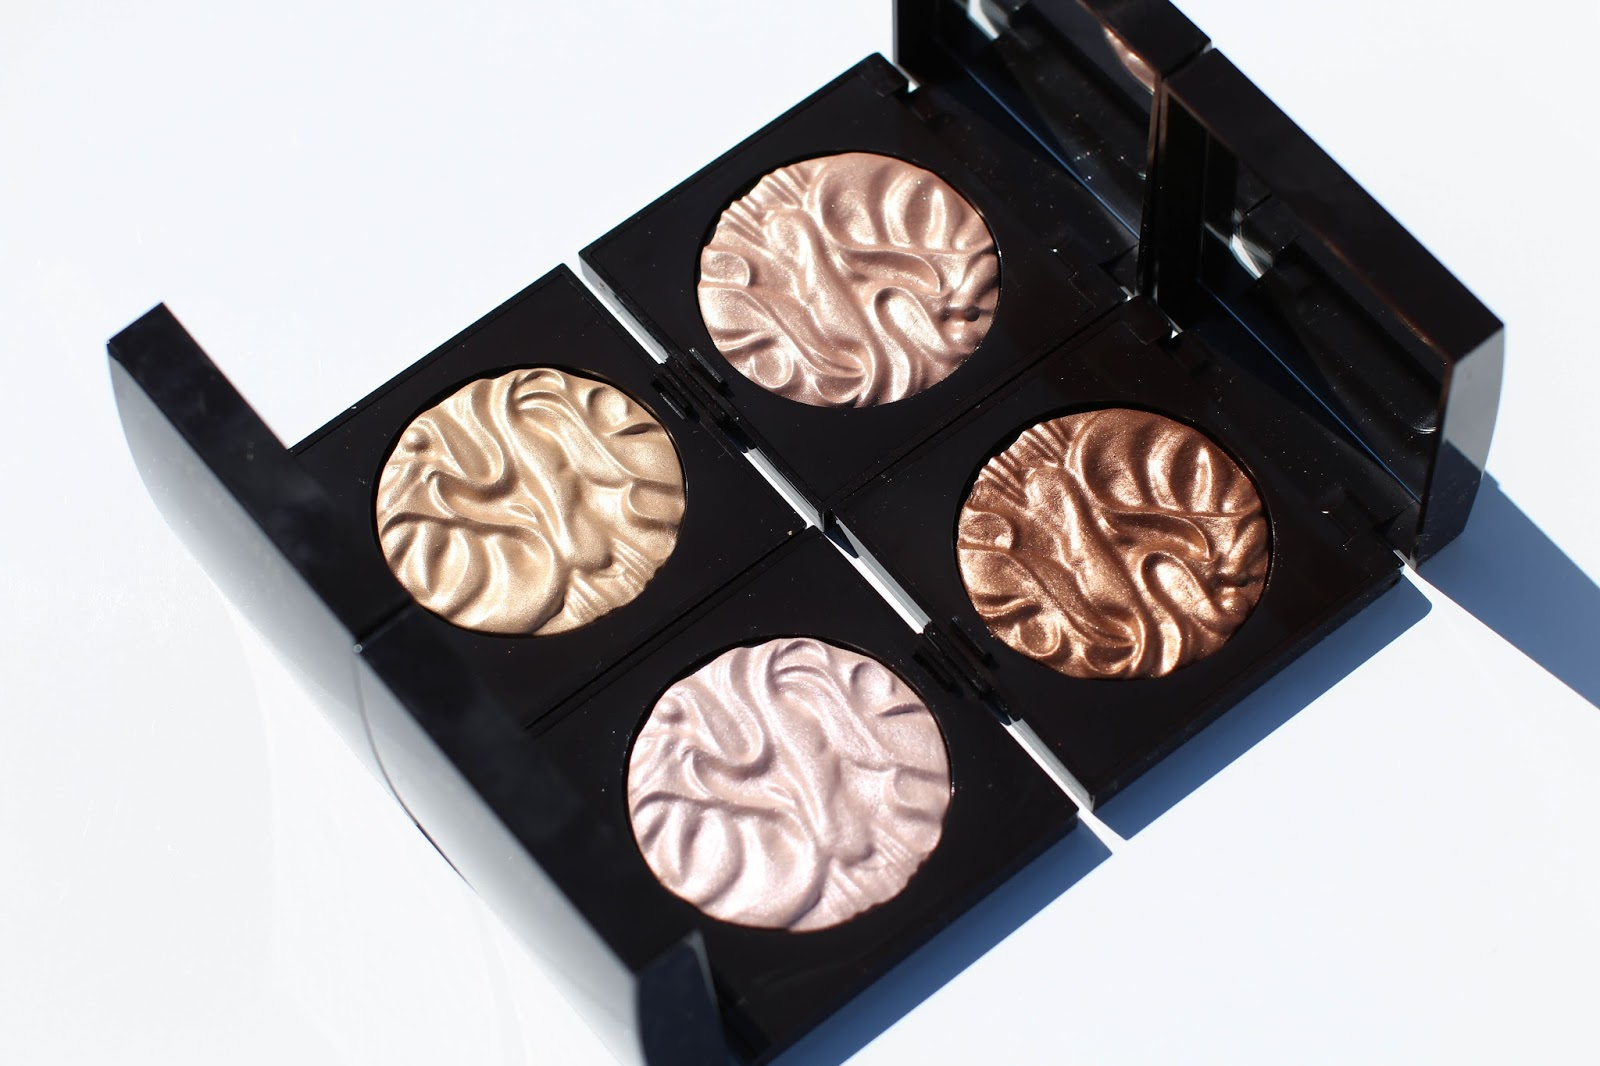 Laura Mercier Face Illuminator Powders - All Shades with Swatches